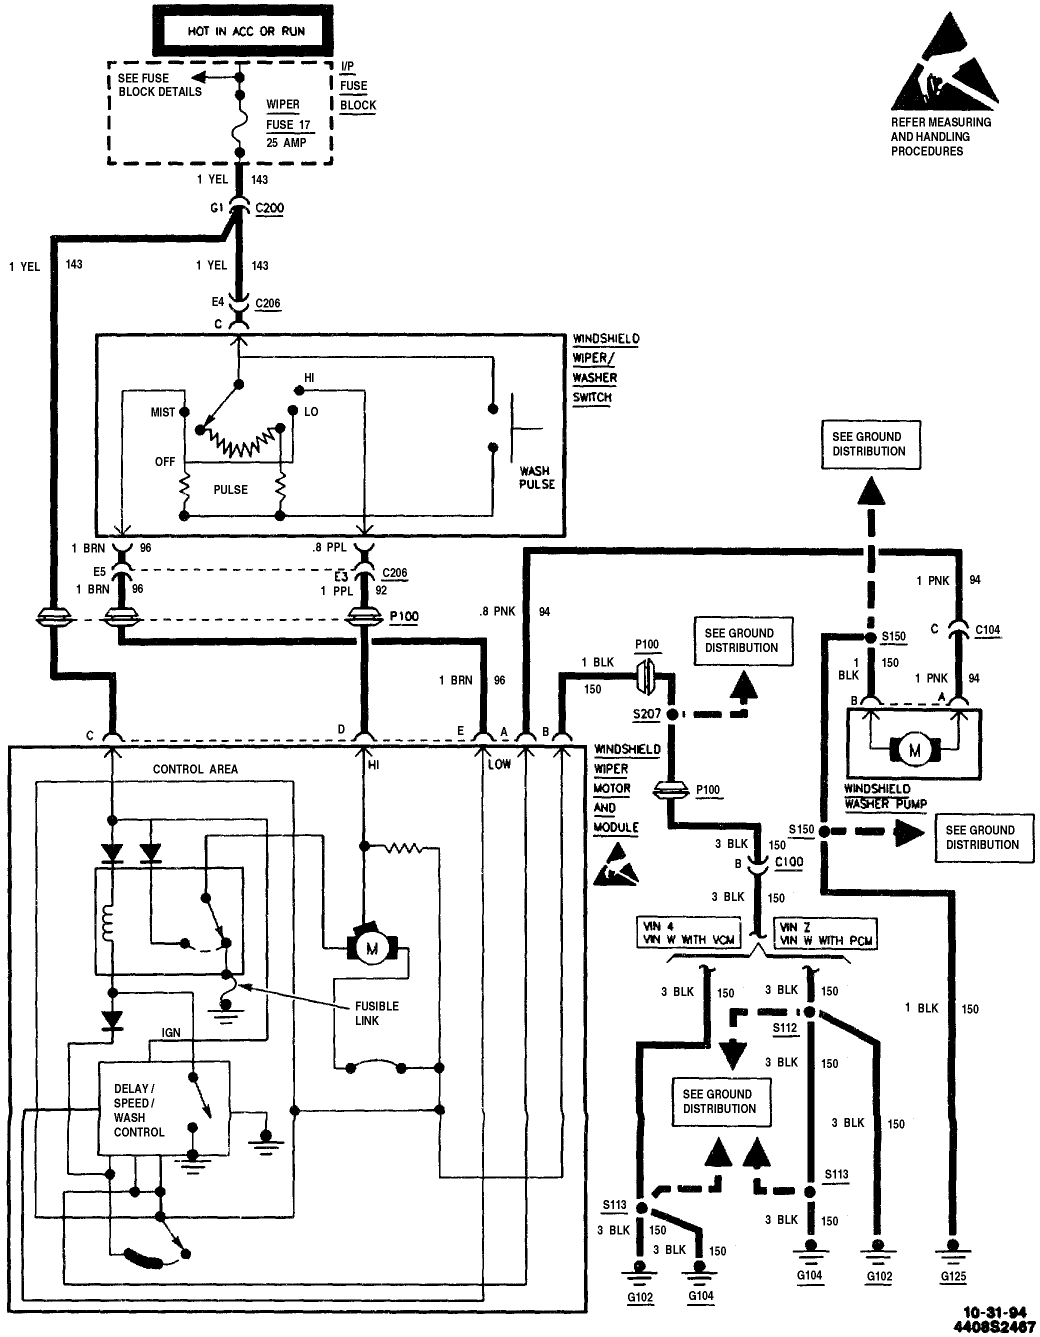 original wiper motor wiring diagram i need to know the schematic or wiring diagram for cj5 wiper motor at gsmx.co